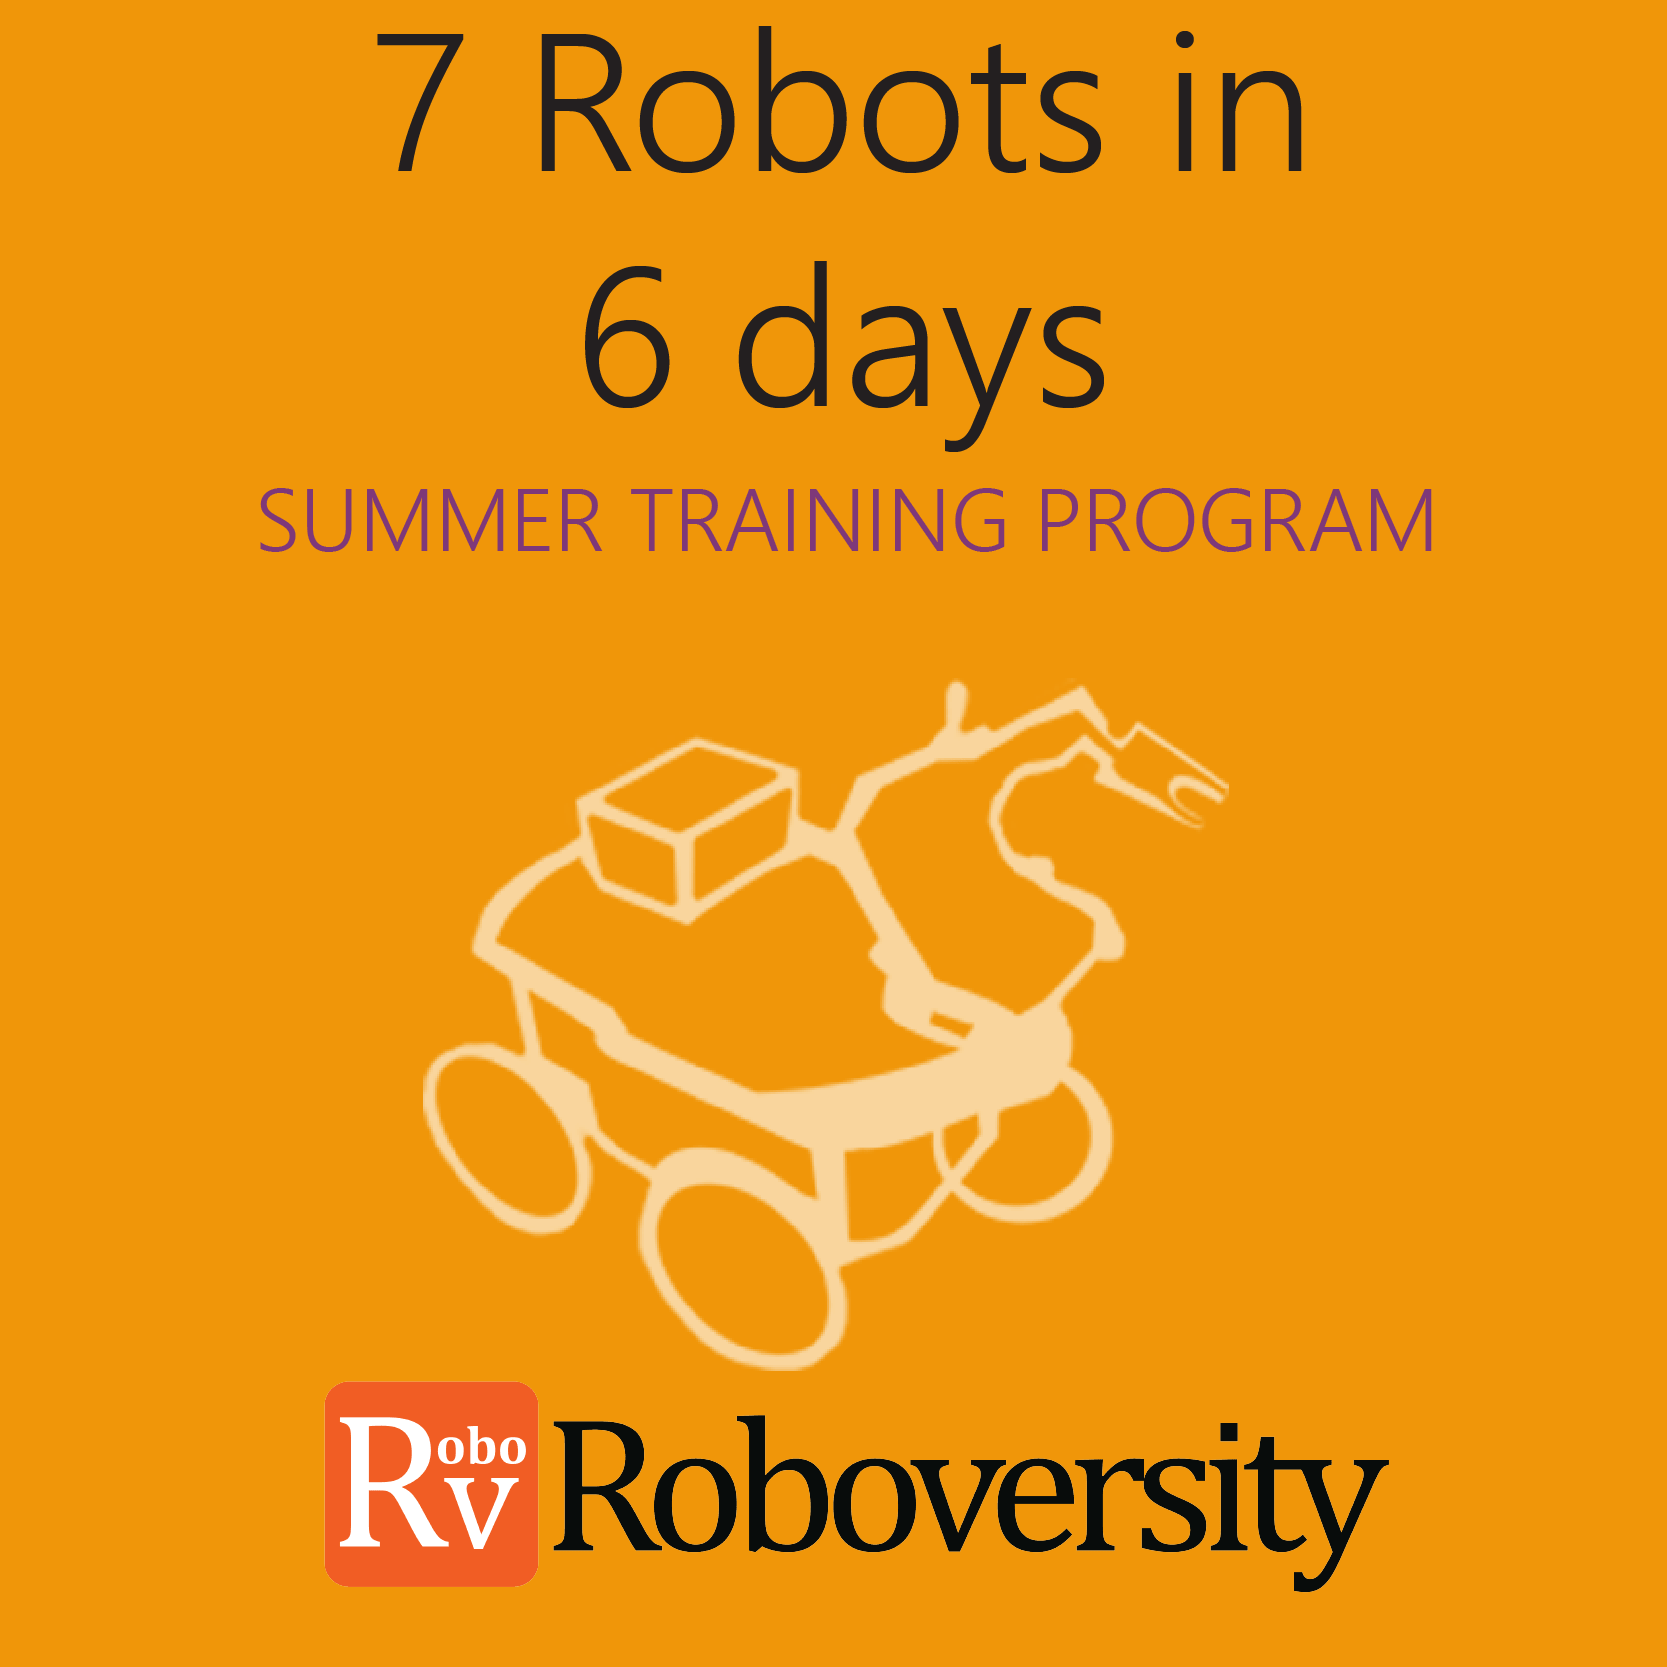 Summer Training Program in Robotics - 7 Robots in 6 Days in Trichy